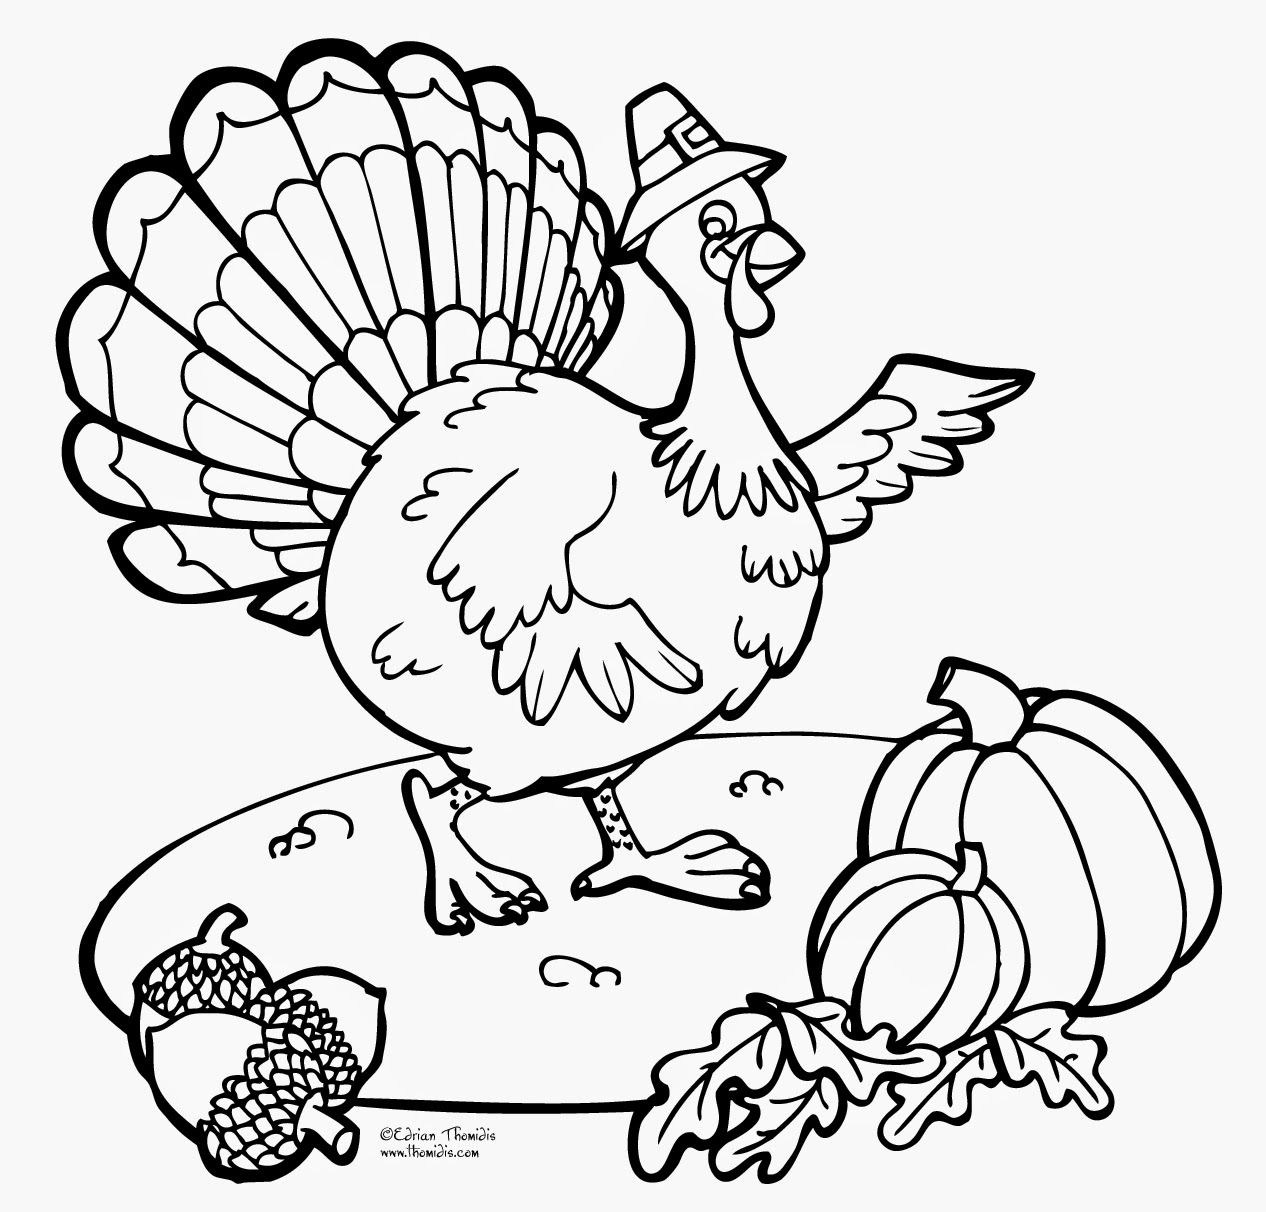 coloring printable turkey thanksgiving day printable coloring pages minnesota miranda coloring turkey printable